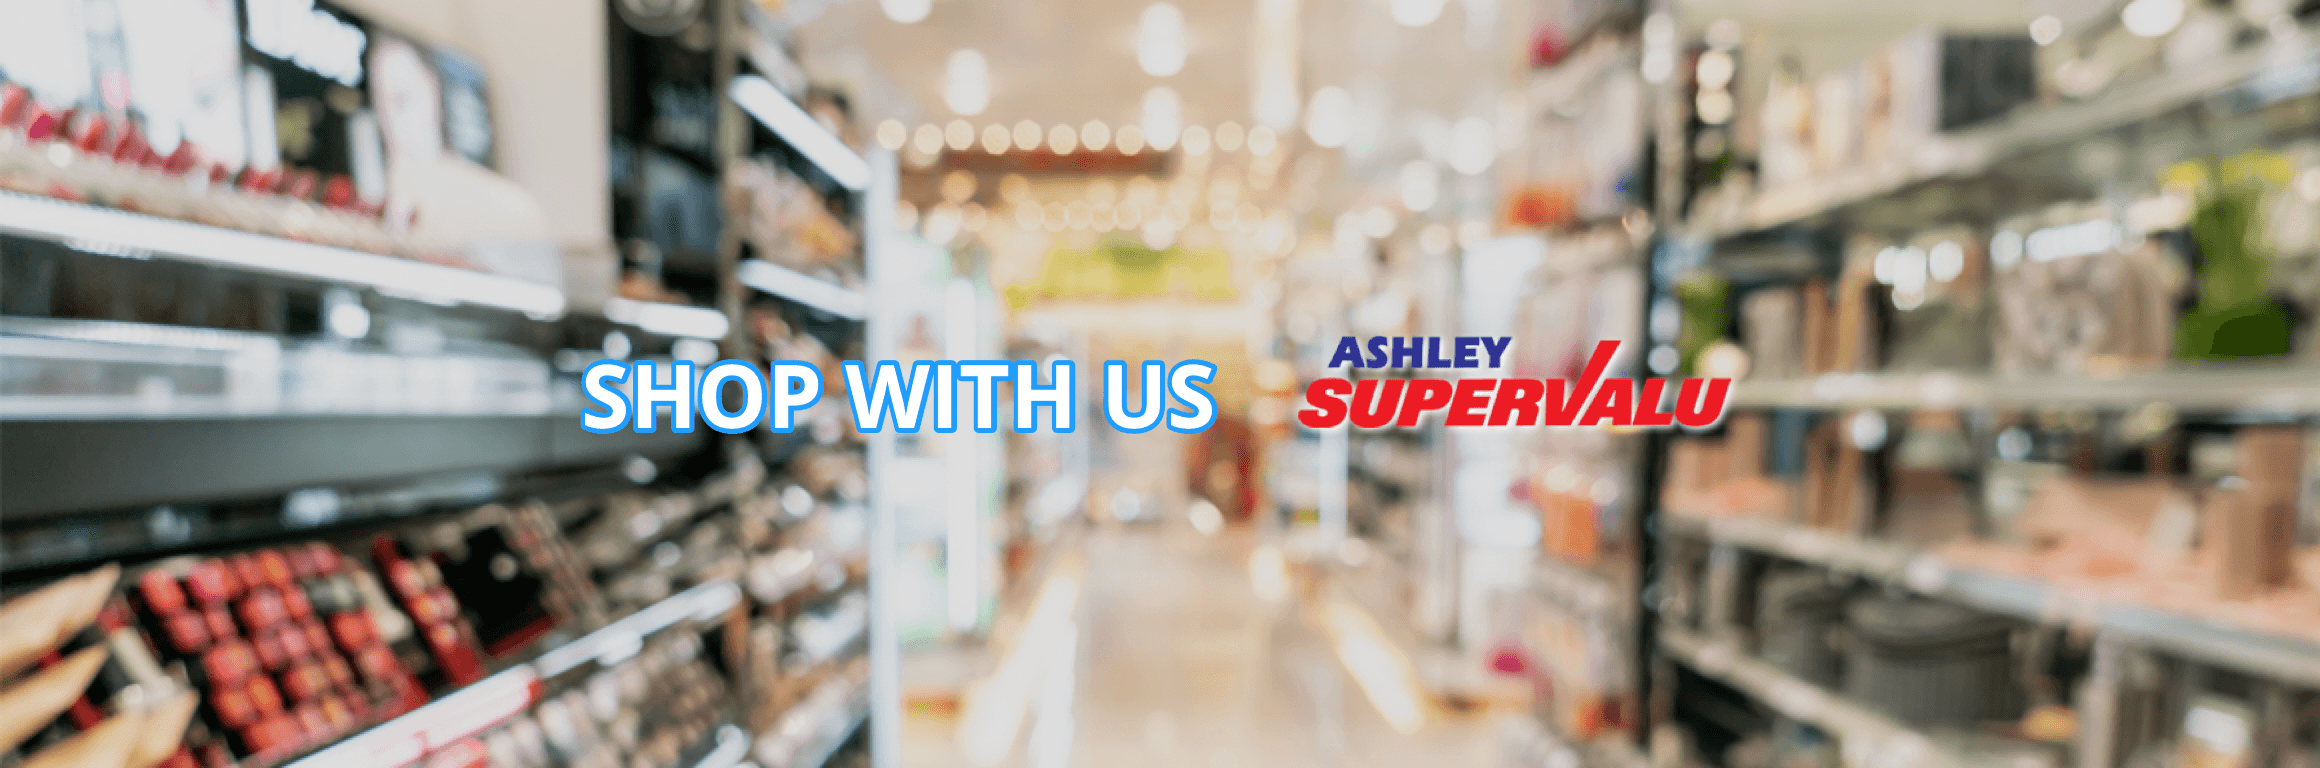 SHOP WITH US | Ashley SuperValu